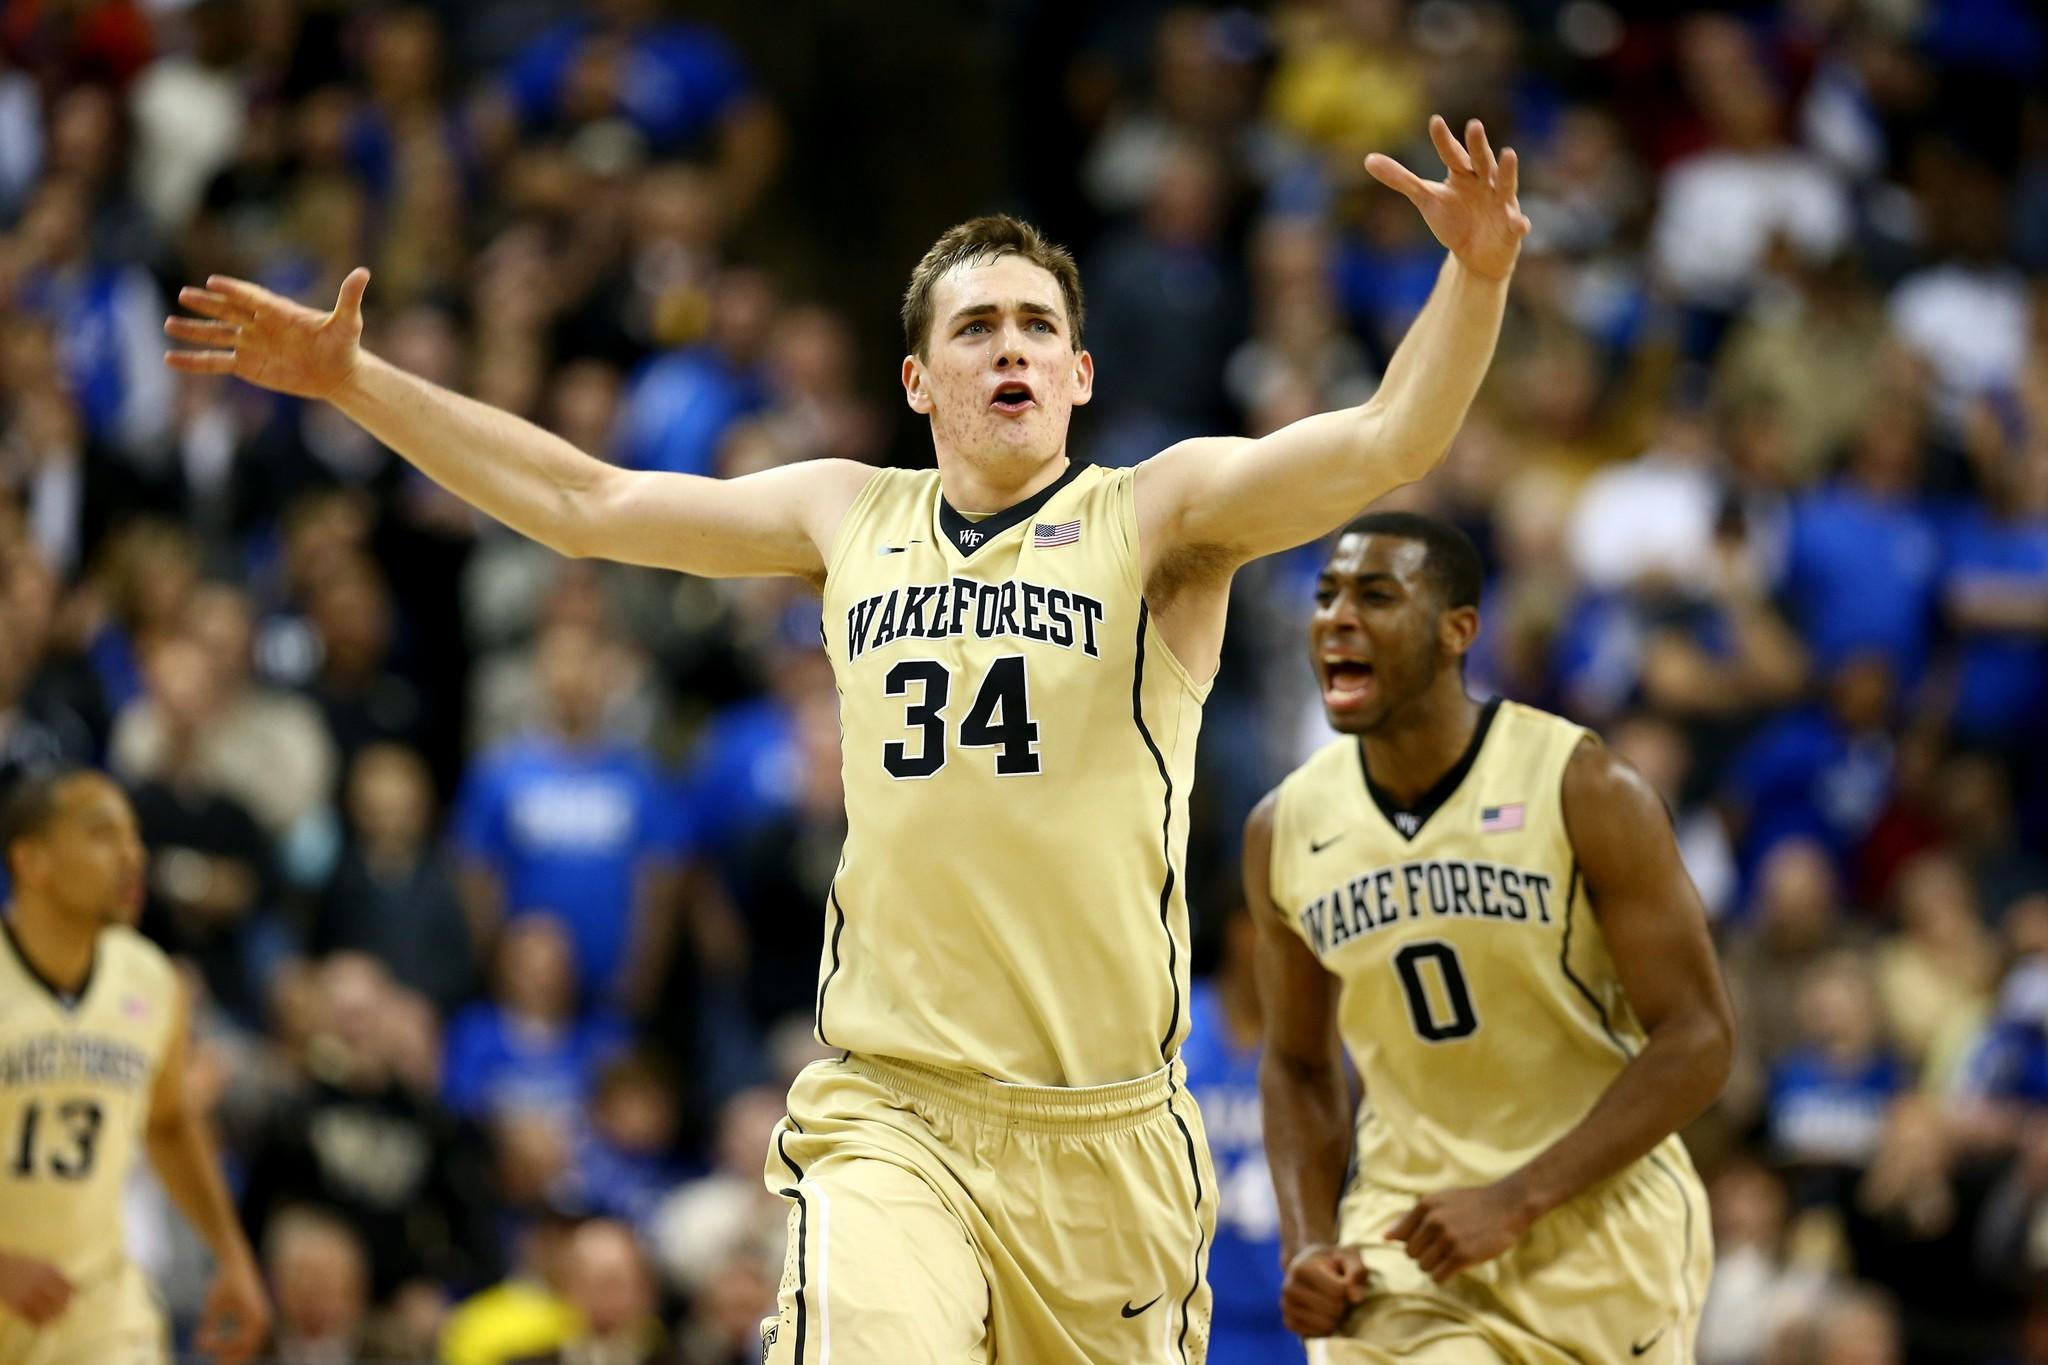 Wake Forest's Tyler Cavanaugh reacts after hitting a shot with teammate Codi Miller-McIntyre.